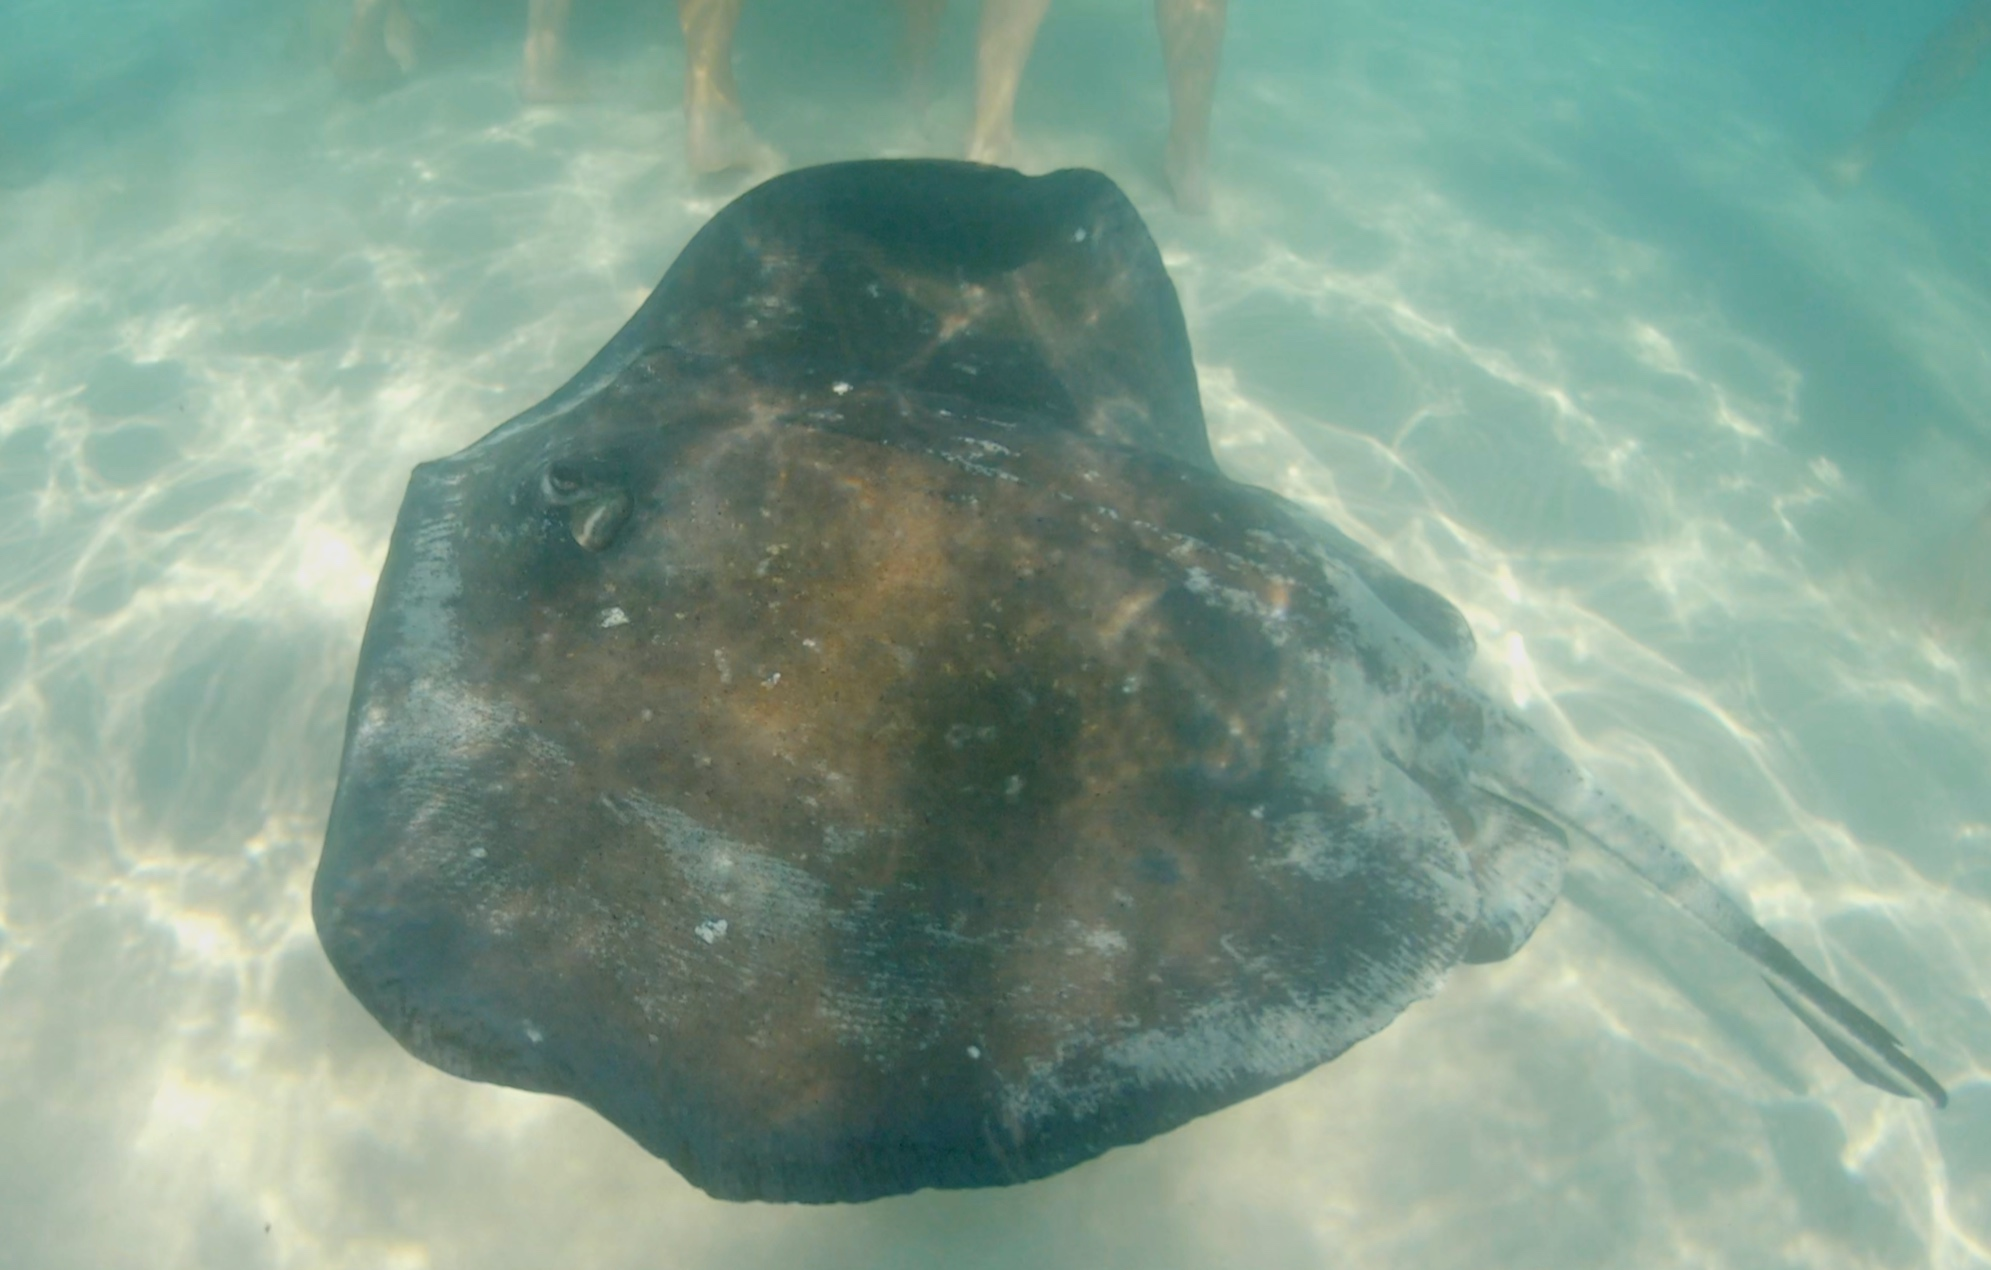 A stingray swimming round our feet.